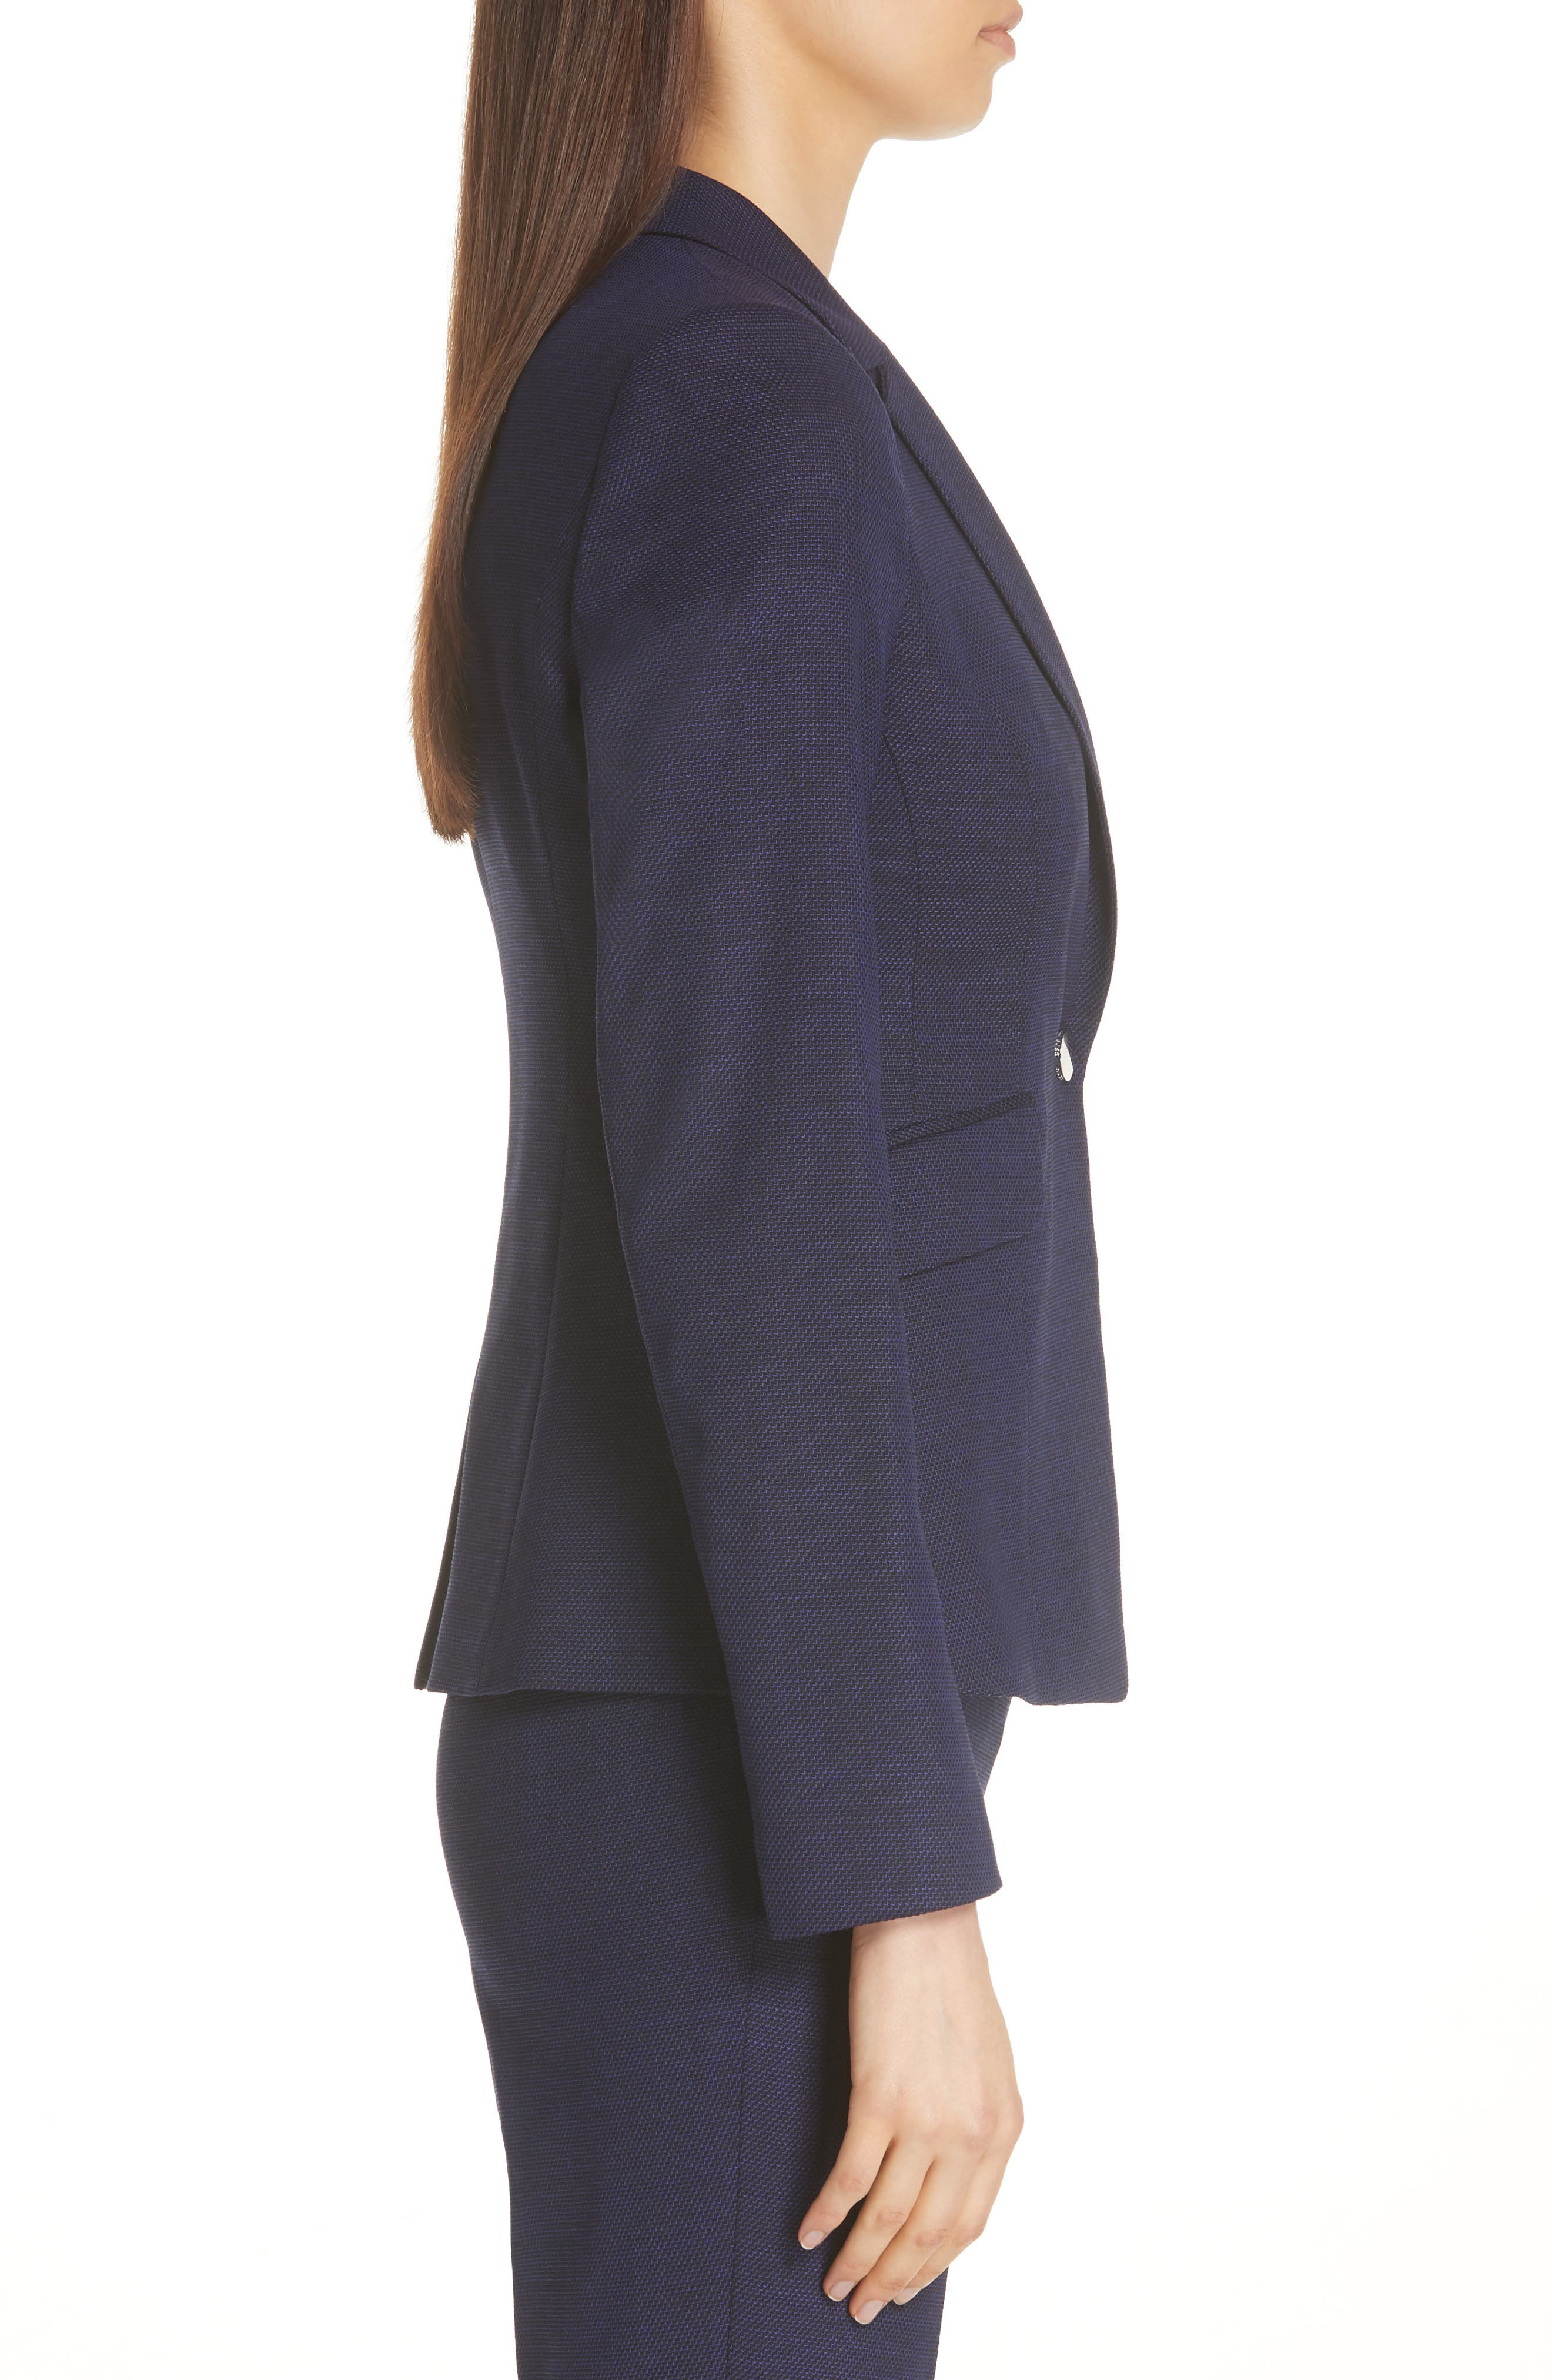 Jibalena Mini Glencheck Suit Jacket,                             Alternate thumbnail 3, color,                             Deep Lilac Fantasy